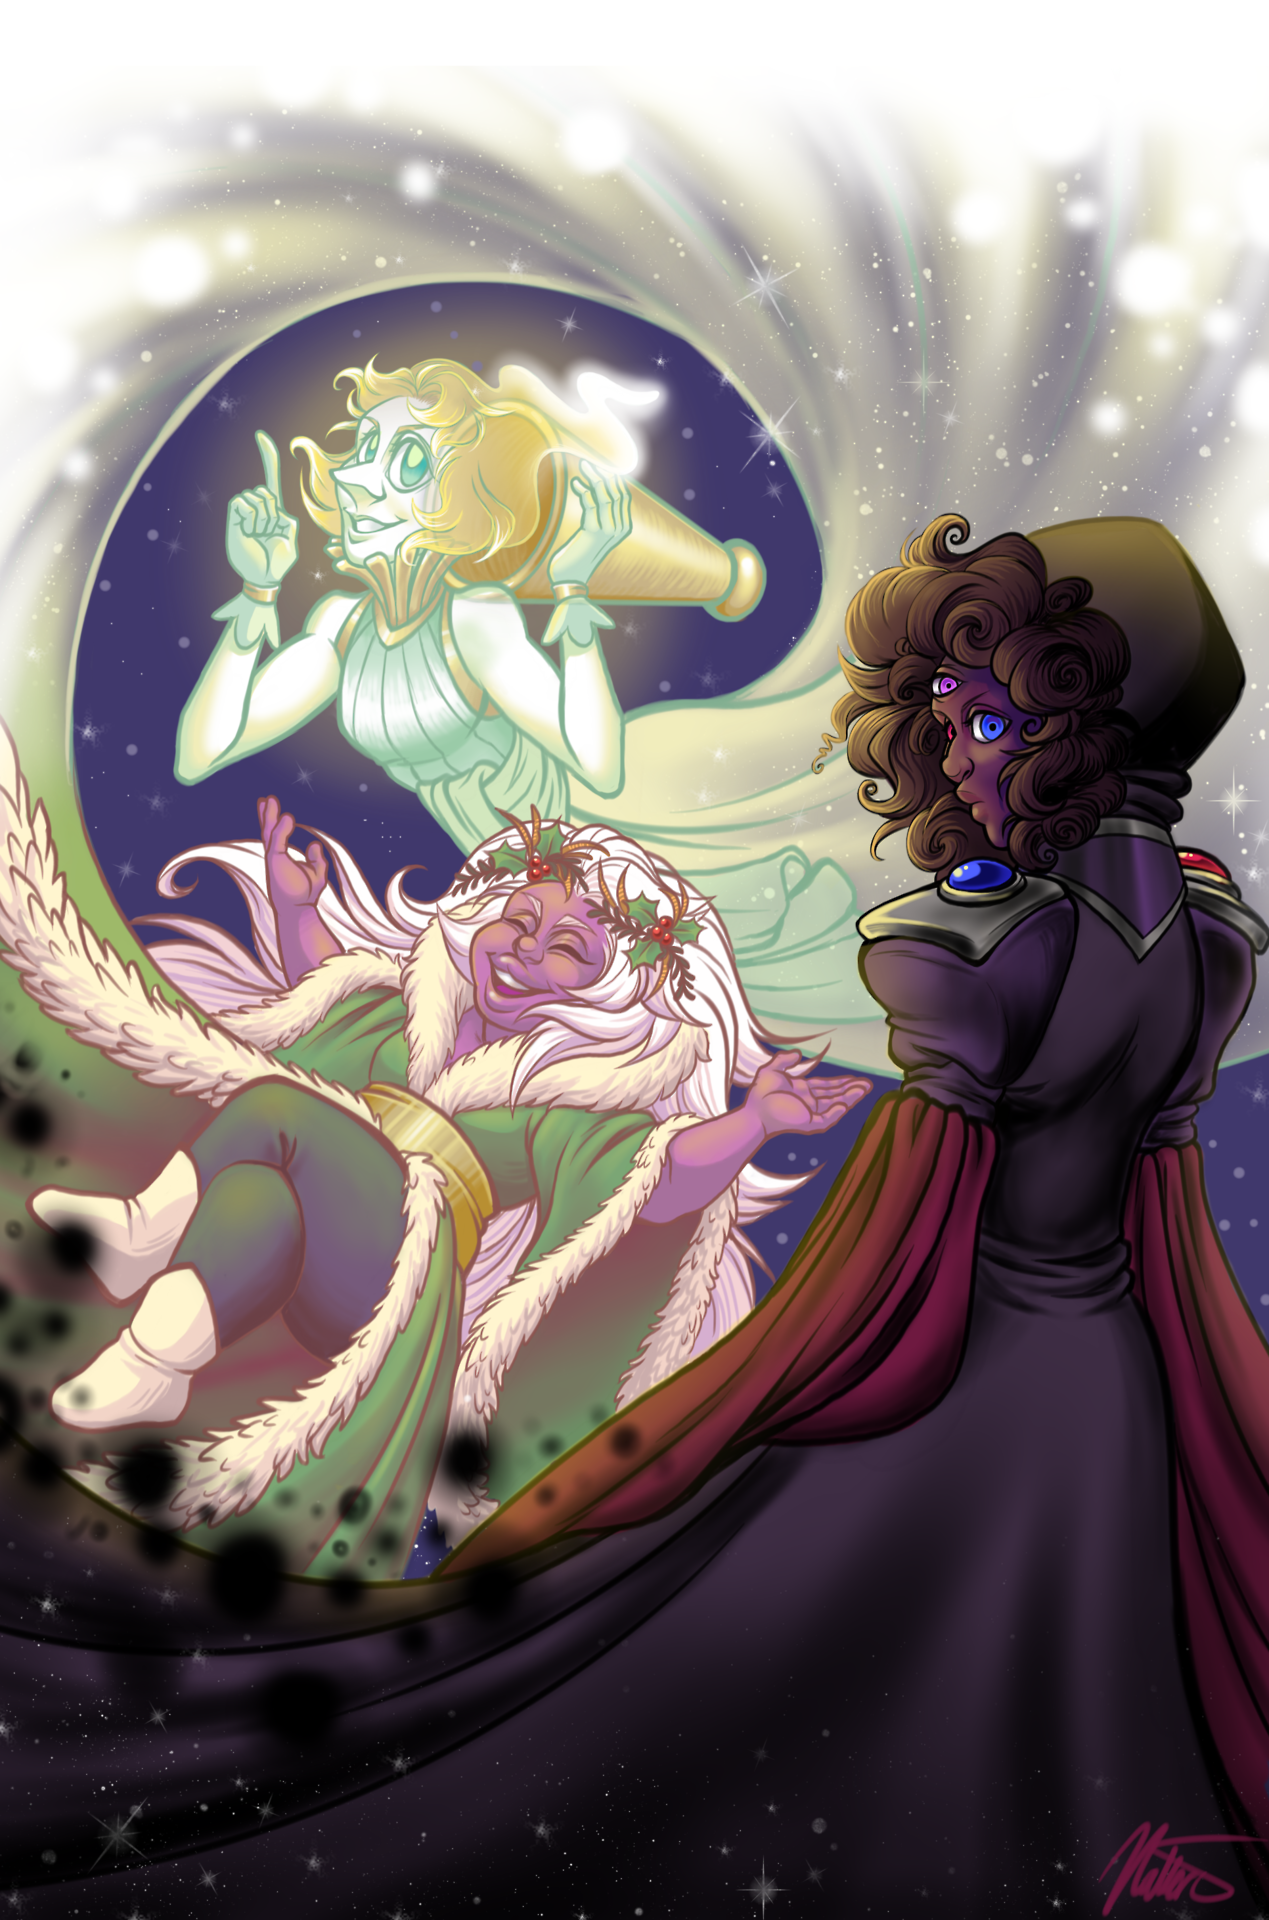 The Gems Spirits of Christmas Past, Present and Future! This is a re-draw of my christmas piece from last year. Comparison of the old and new piece here: link